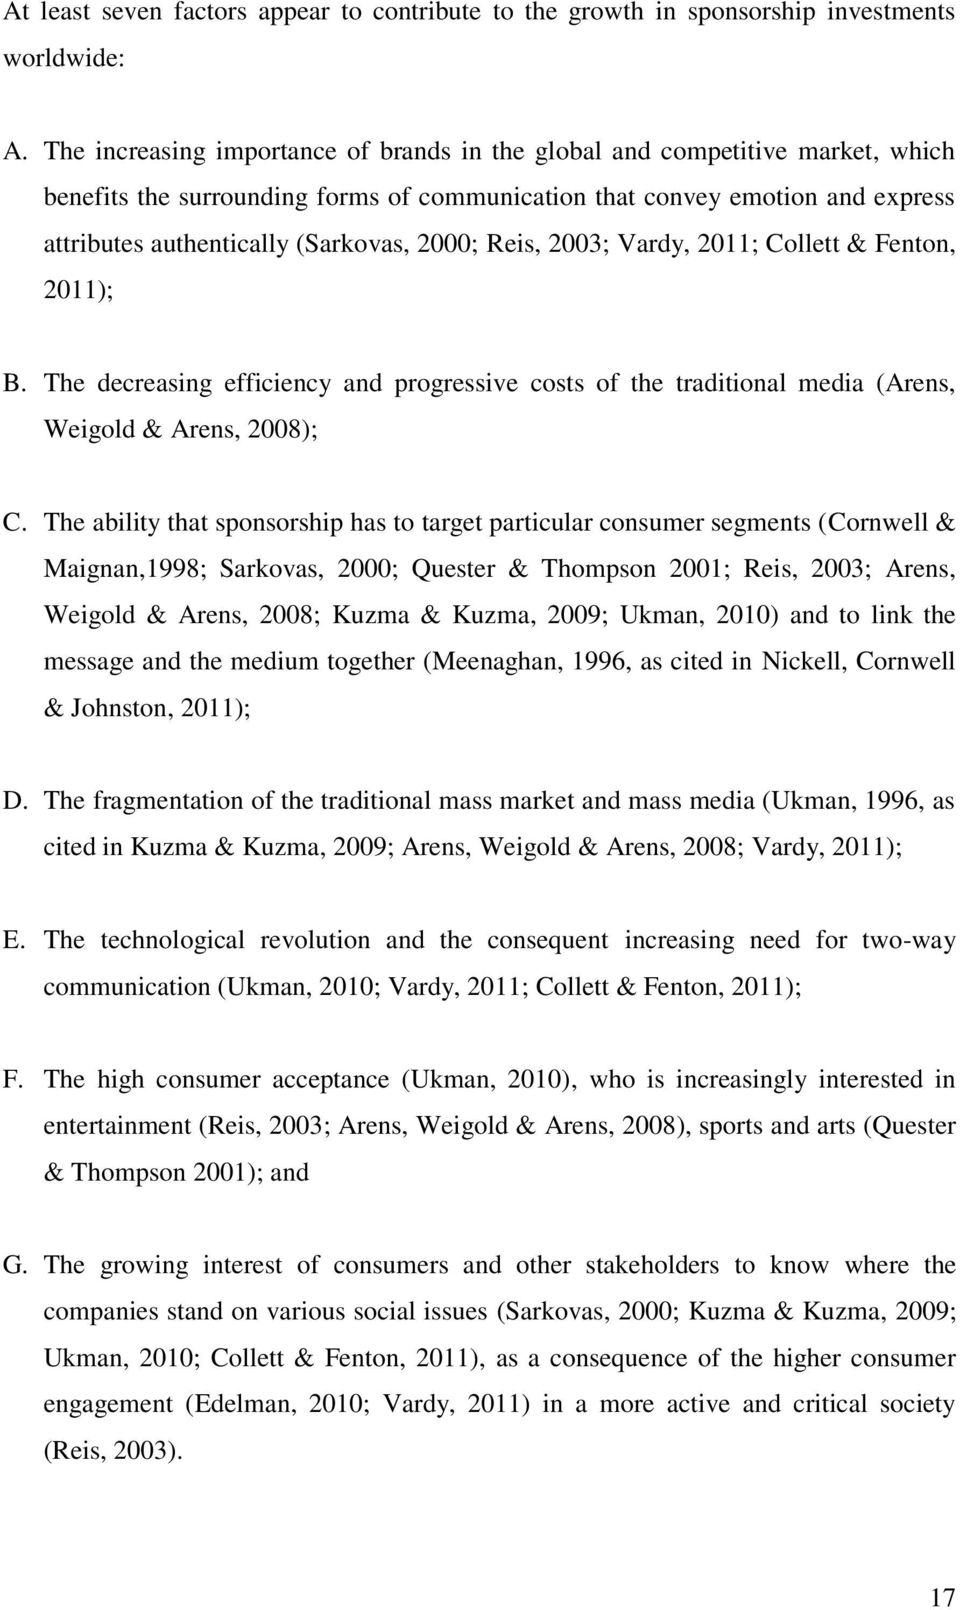 2000; Reis, 2003; Vardy, 2011; Collett & Fenton, 2011); B. The decreasing efficiency and progressive costs of the traditional media (Arens, Weigold & Arens, 2008); C.